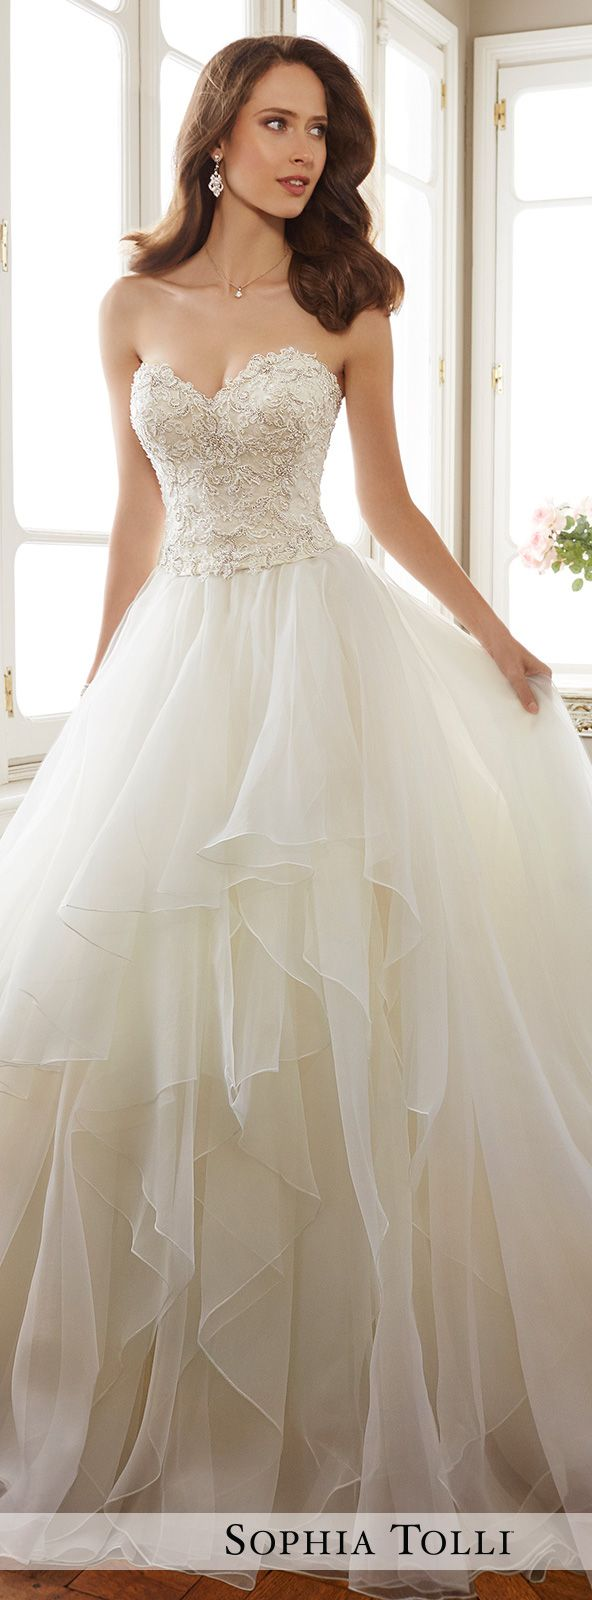 Best 25+ Tool wedding dresses ideas on Pinterest | Satin style ...